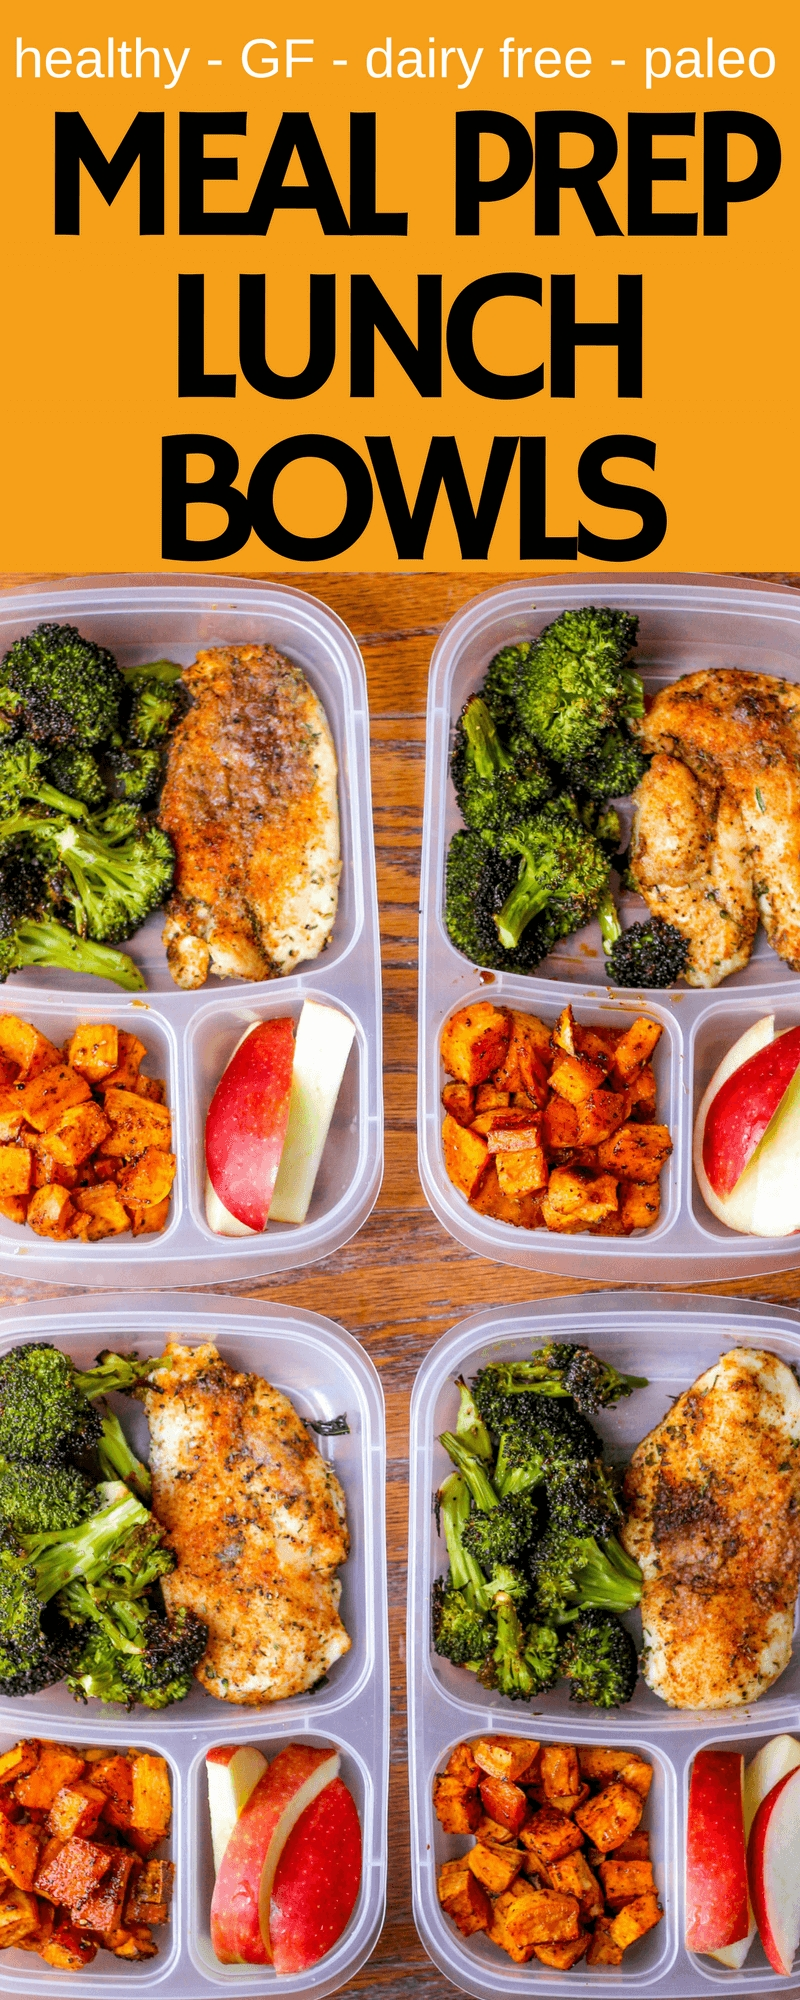 10 Lovable Paleo Lunch Ideas For Work meal prep lunch bowls with spicy chicken roasted lemon broccoli 1 2020